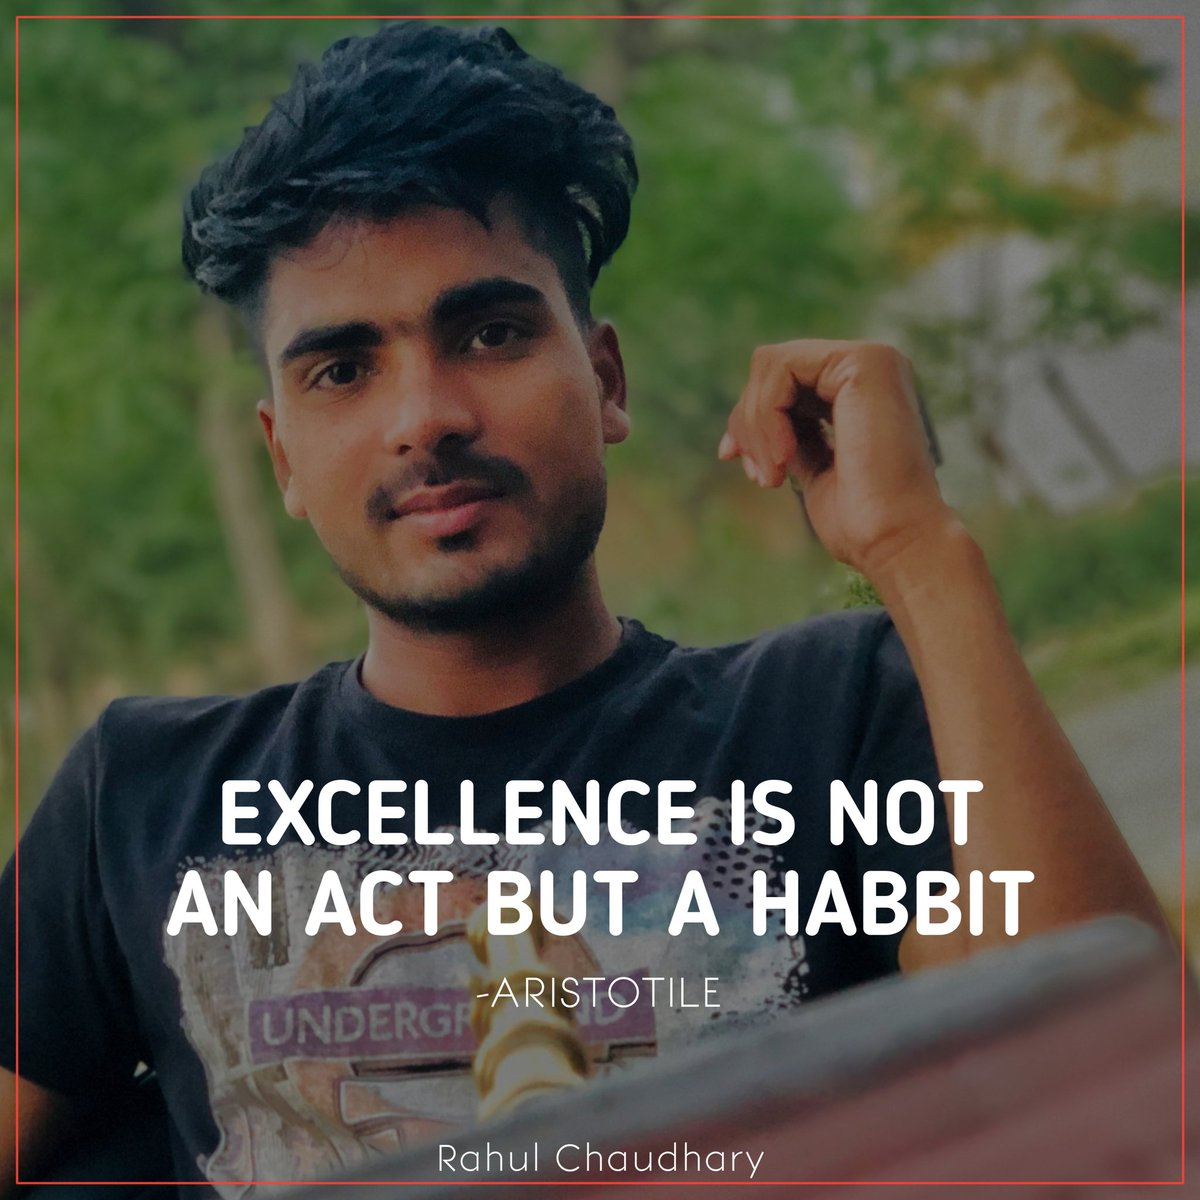 Make That Habit   Find That Reason to Be Successful that will help you to build your habit!  Hope you got the Message..!  Love  & Respect  Rahul Chaudhary AKA TechSavvy  #personalgrowth #selfdevelopment #lifecoach #positiveliving #contentstrategy #TechSavvy #rahulchaudharypic.twitter.com/w03vXZwOE3